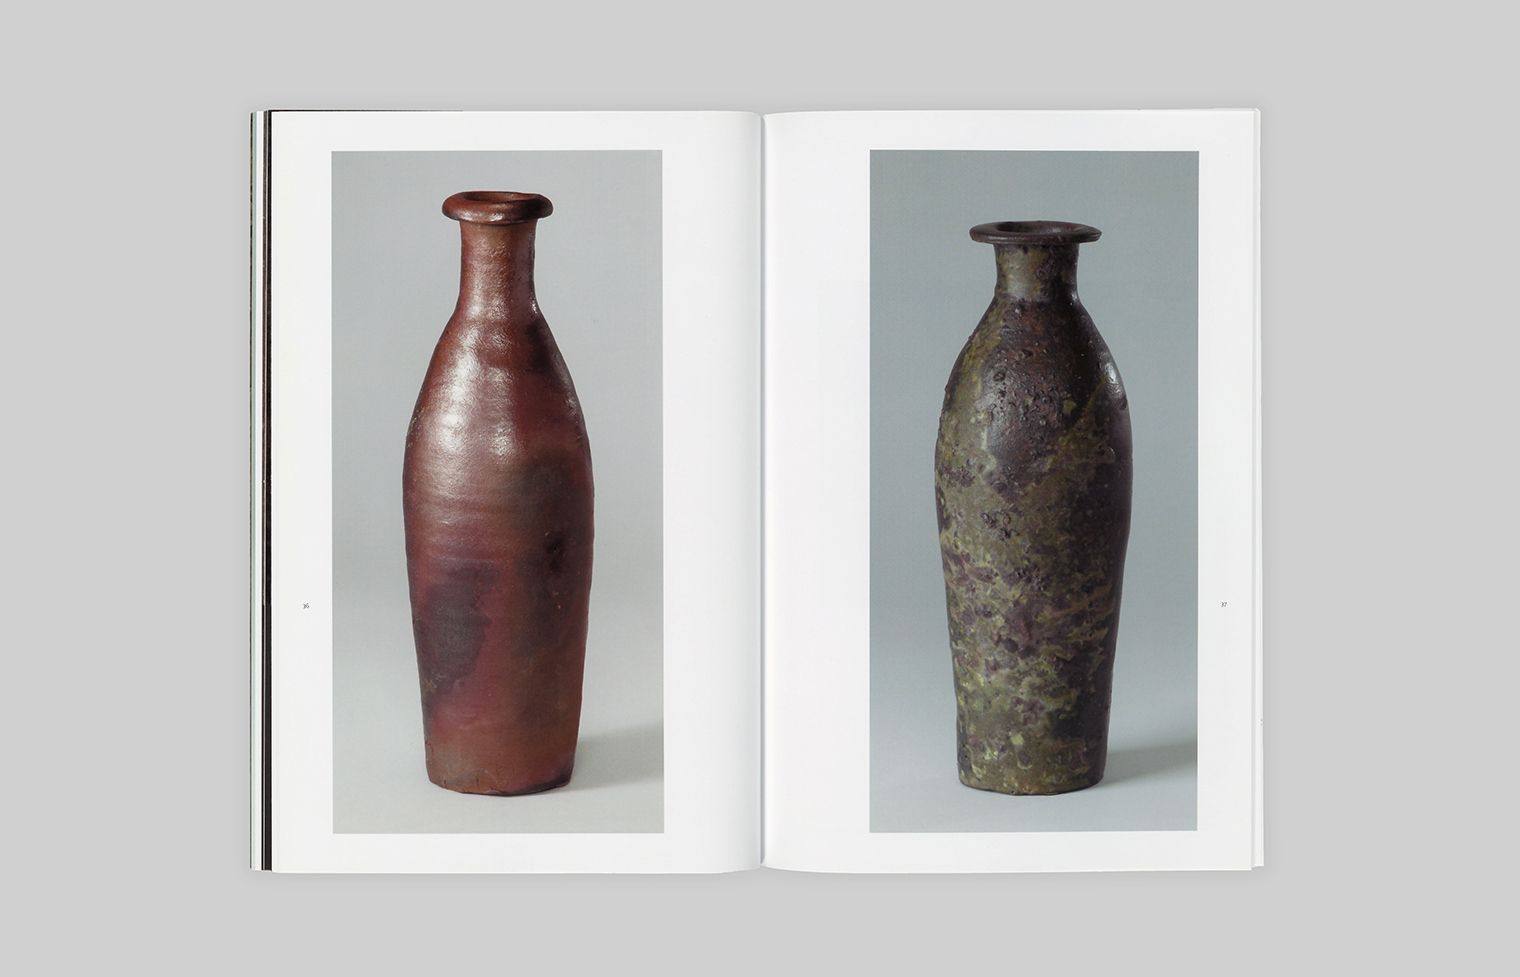 Two stoneware bottles with contrasting glazes.